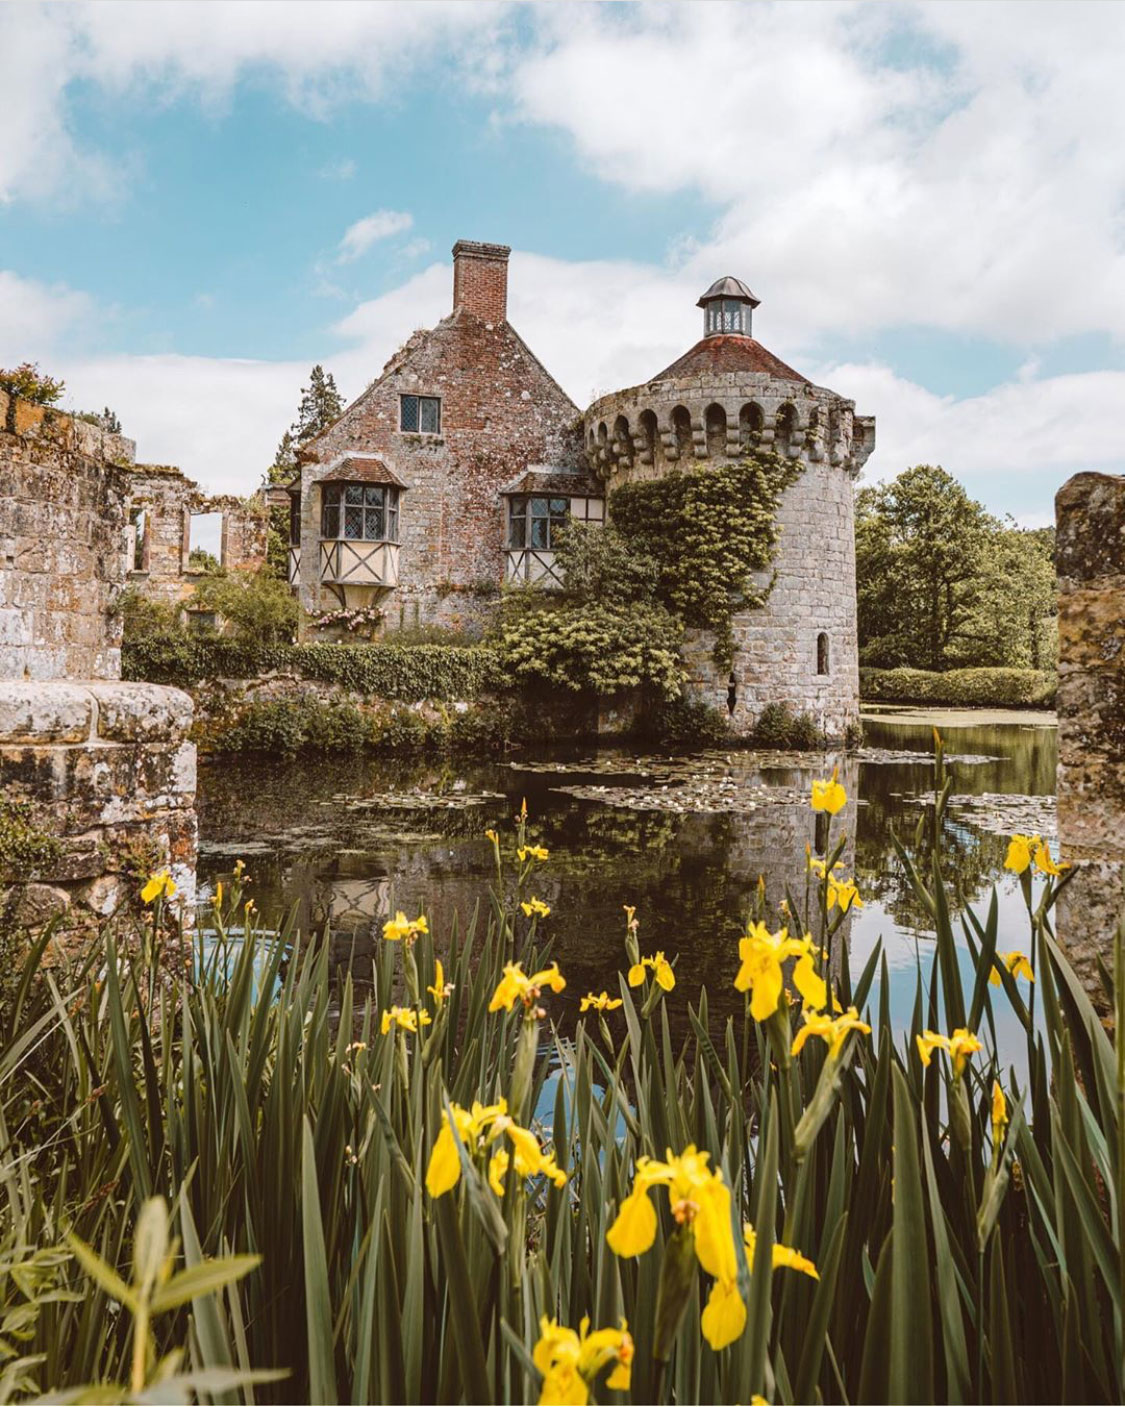 Places: Scotney Castle